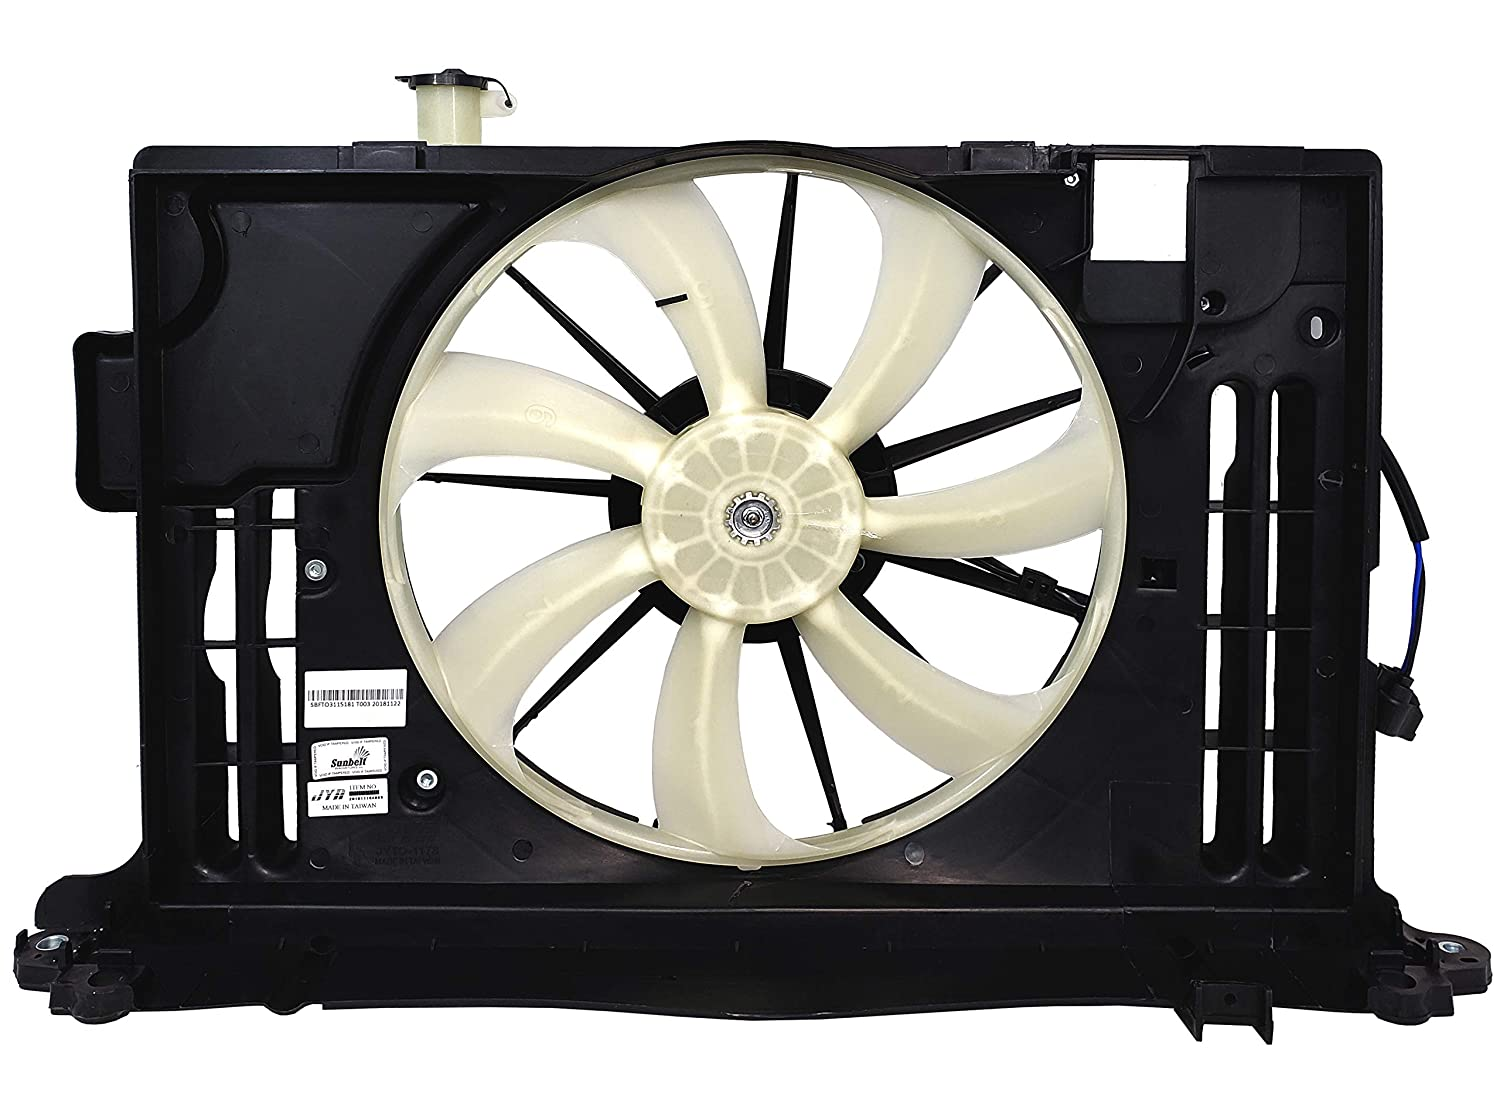 Sunbelt Radiator Cooling Fan Assembly For Toyota Corolla TO3115181 Drop in Fitment